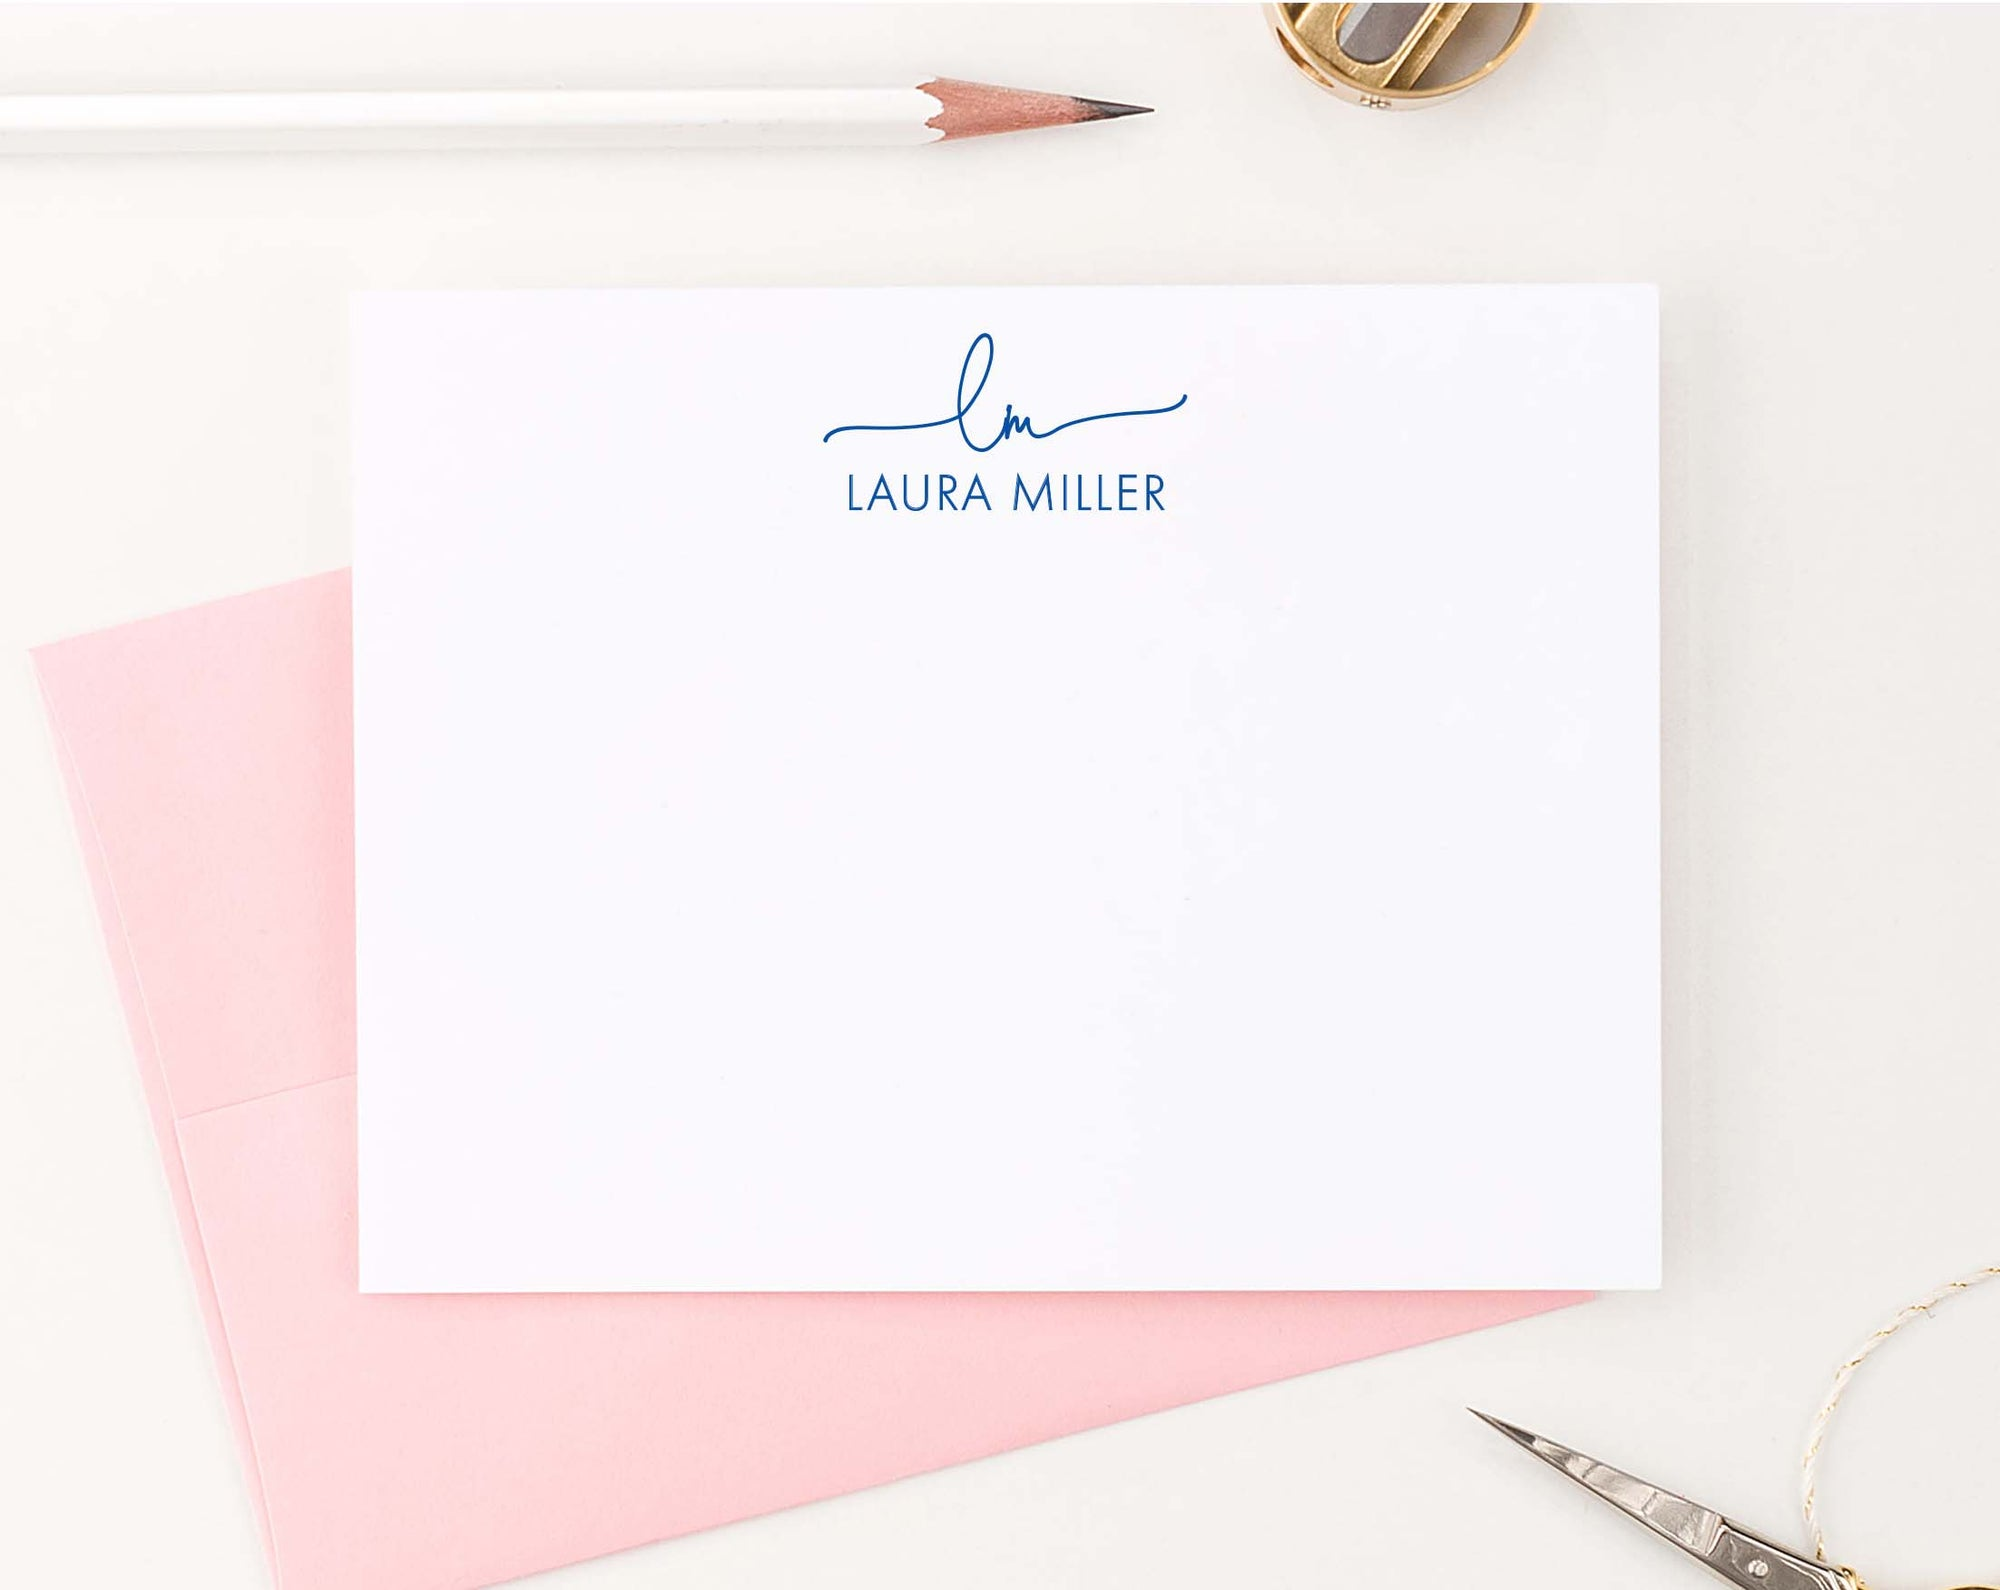 ms054 2 initial and name personalized monogramed stationery for women simple elegant